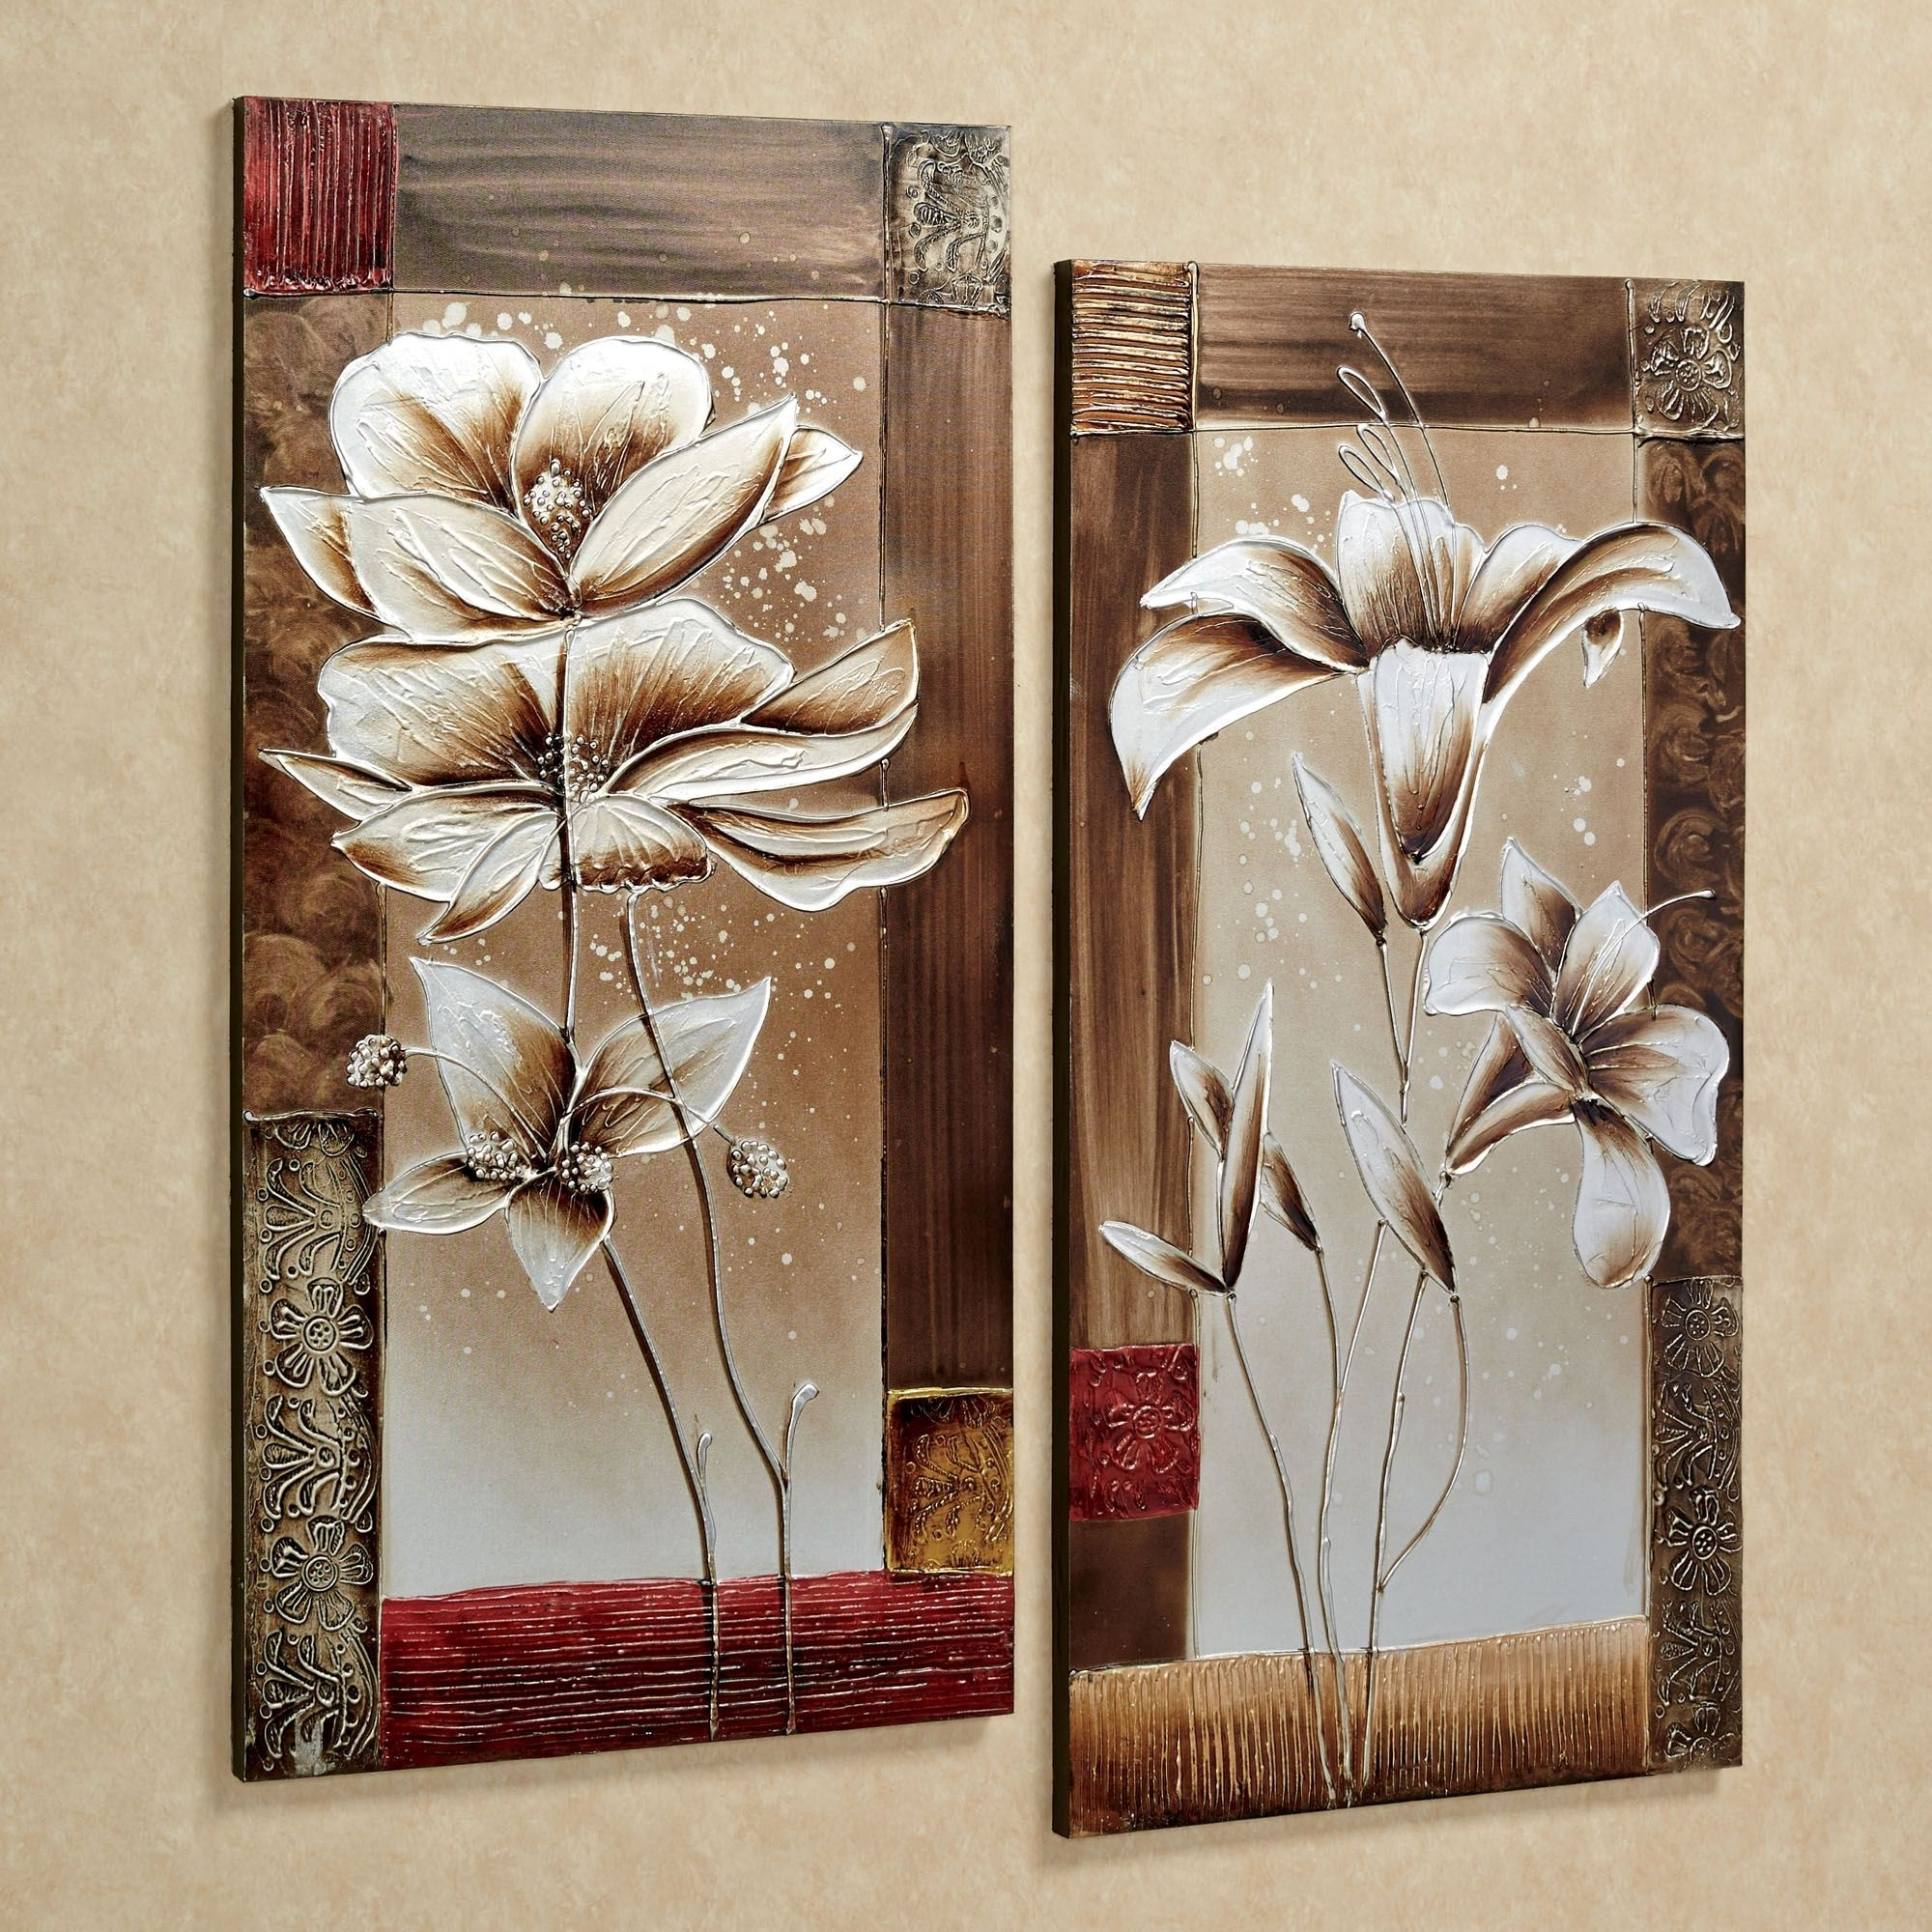 Most Popular Spectacular Deal On Petals Of Spring Canvas Wall Art Set Set Of 2 Inside Shabby Chic Canvas Wall Art (View 14 of 15)